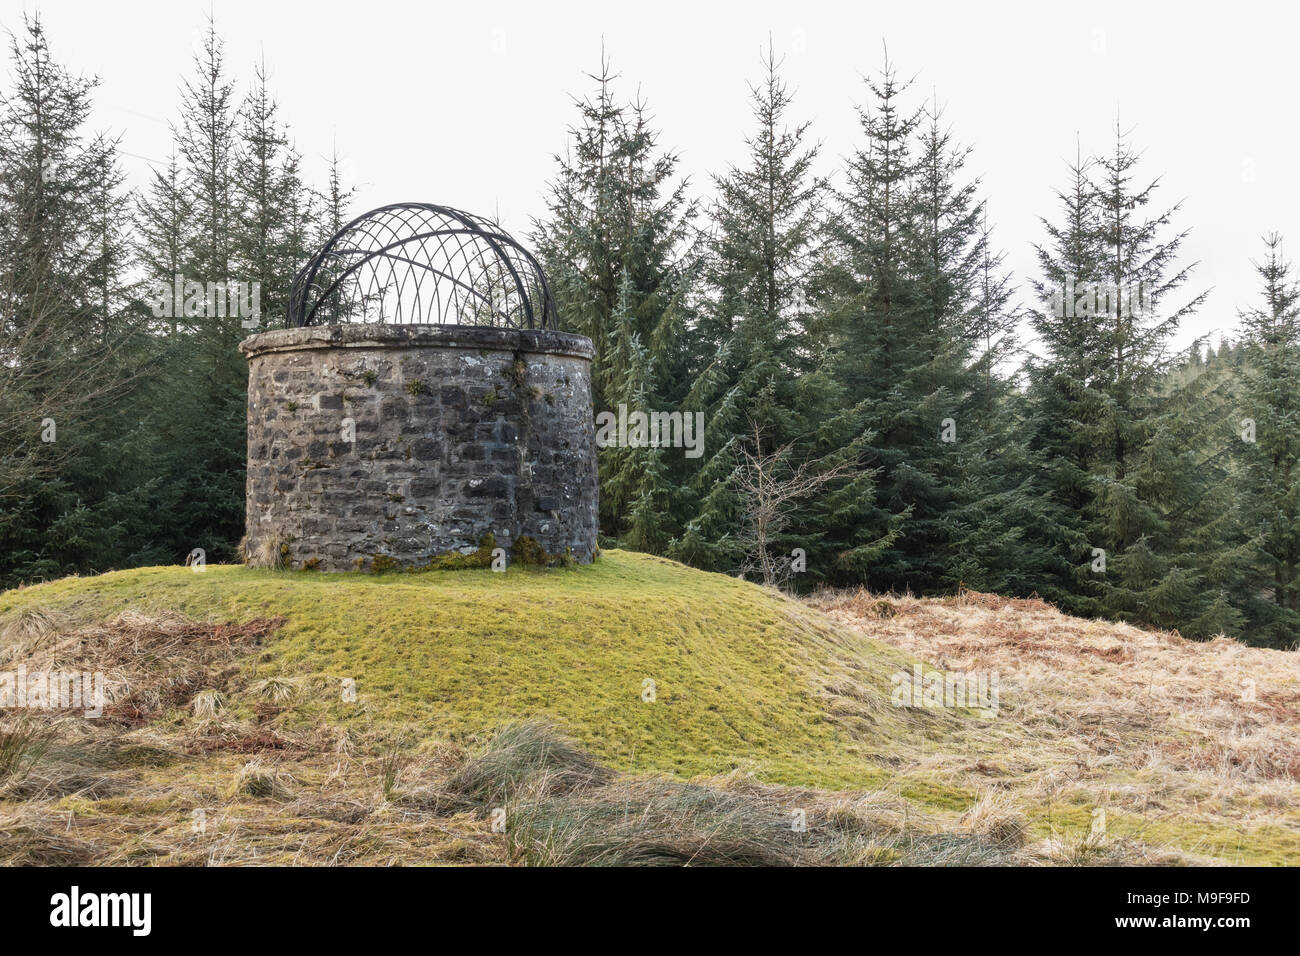 Circular ventilation shaft with hooped birdcage top, Loch Katrine pipeline on the Rob Roy Way between Drymen and Aberfoyle, Scotland, UK - Stock Image